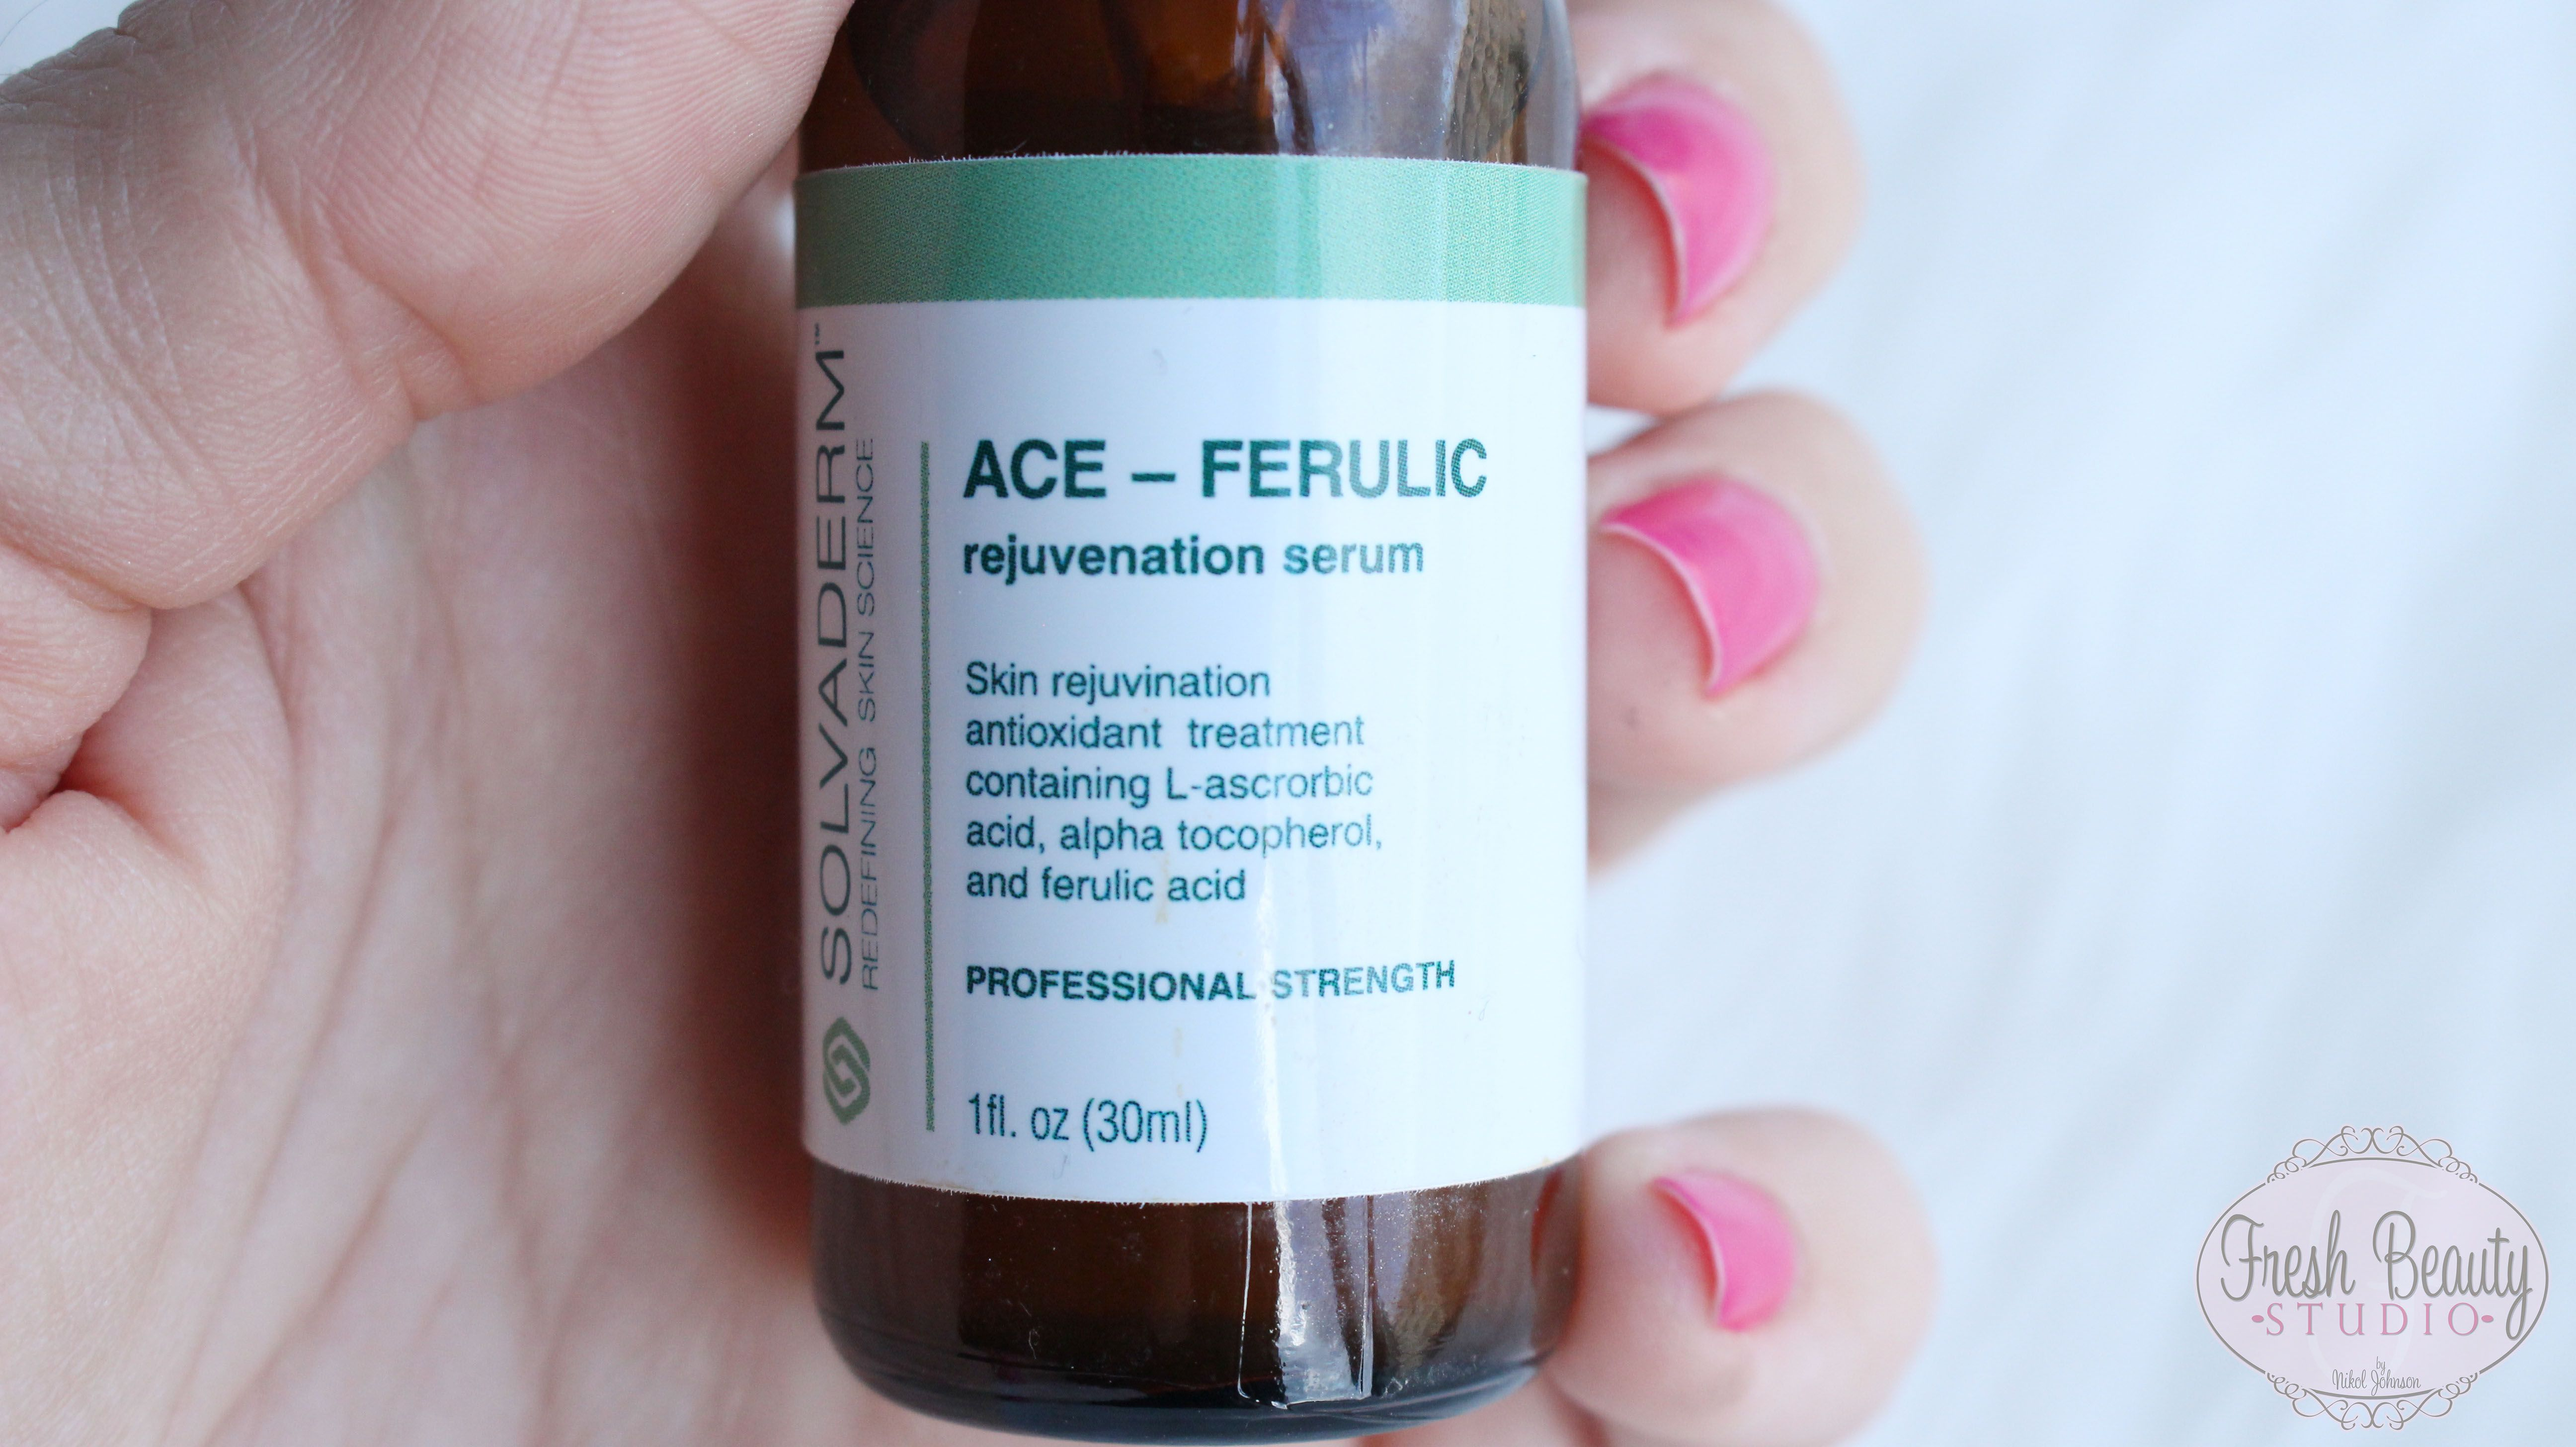 AceFerulic The New Fountain of Youth? Beauty Expert